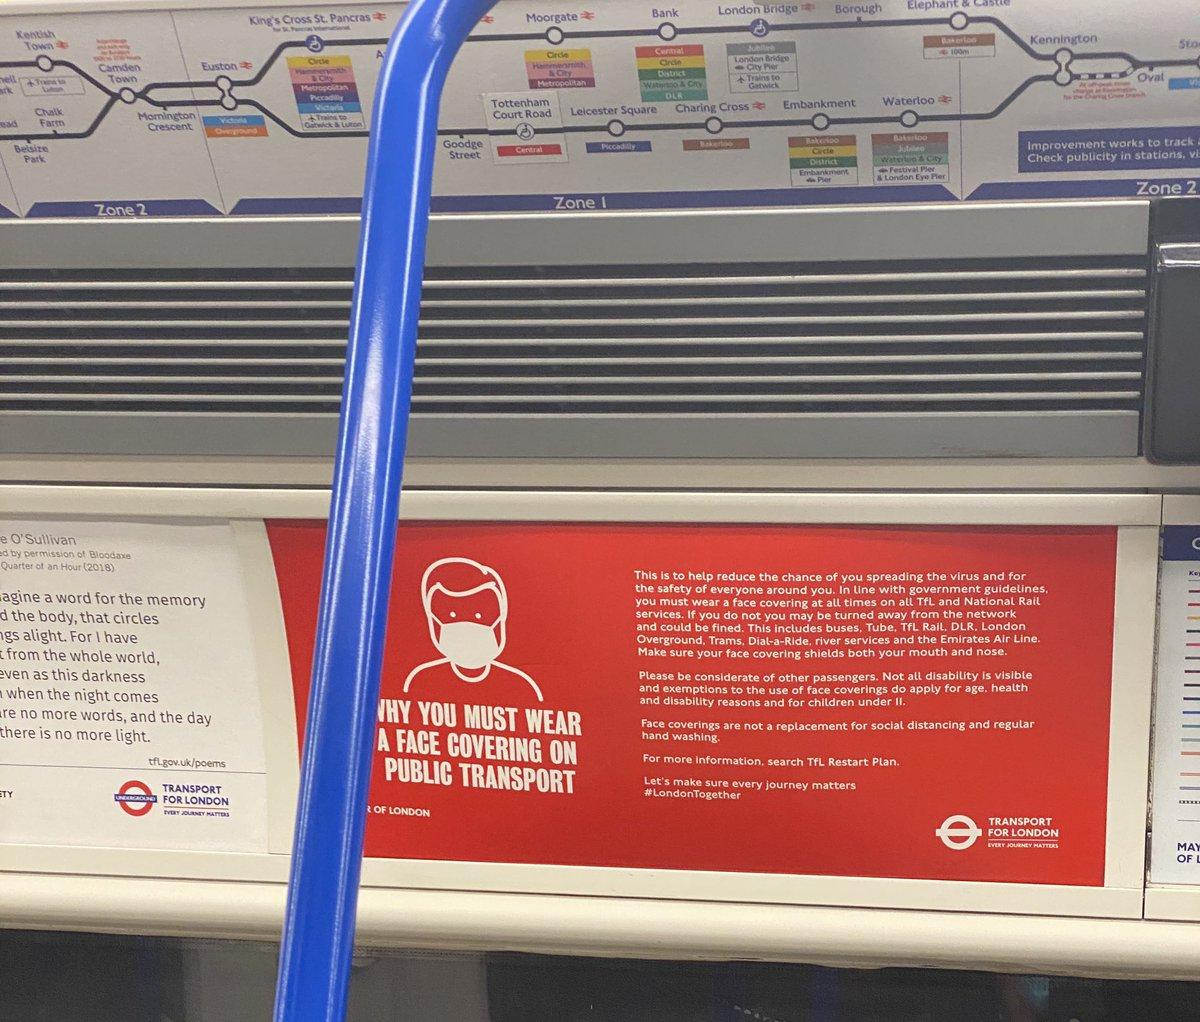 Why you must wear a mask on public transport. ZOOM IN #tfl #underground #metro #london #athens https://t.co/JbxjrUcZqc